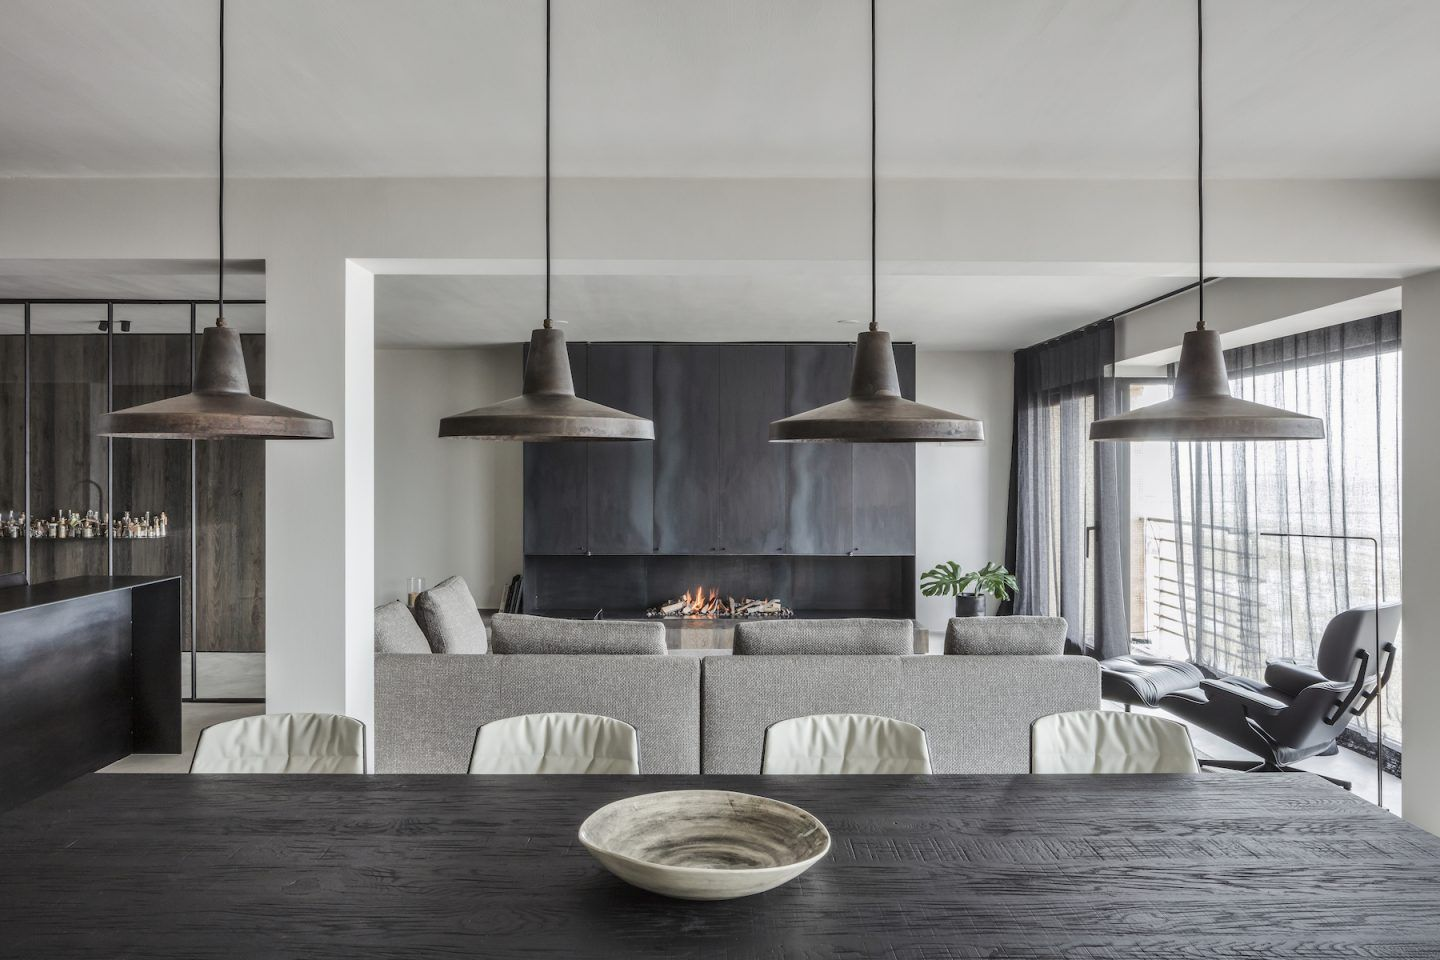 IGNANT-Architecture-Arjaan-De-Feyter-Penthouse-Zoute-04